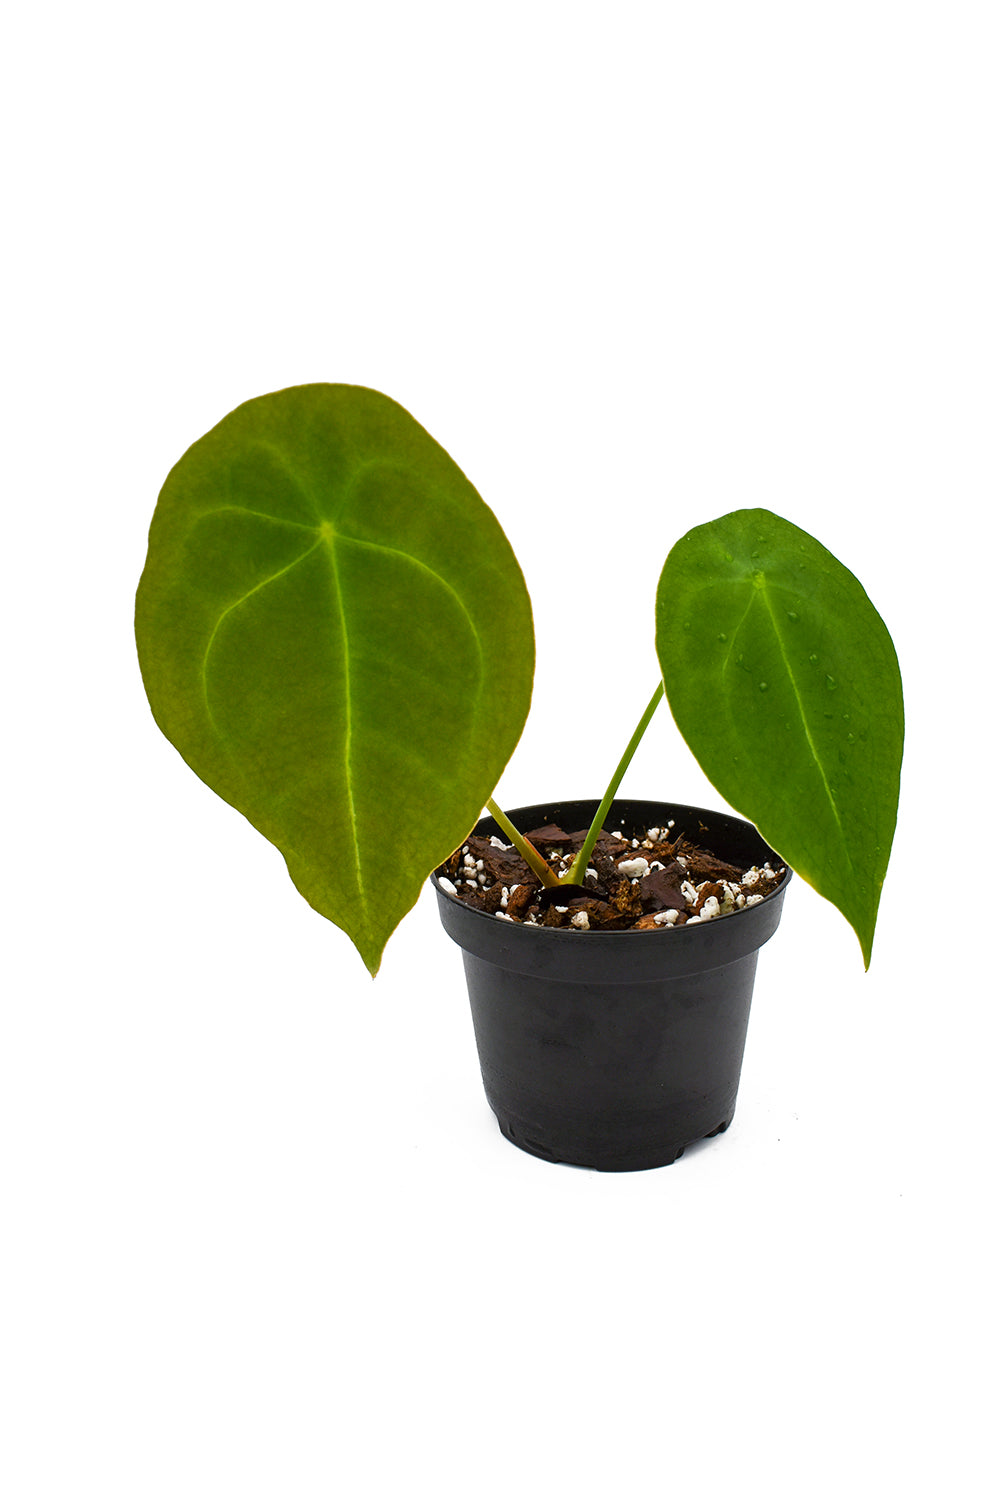 anthurium forgetii rooted cutting